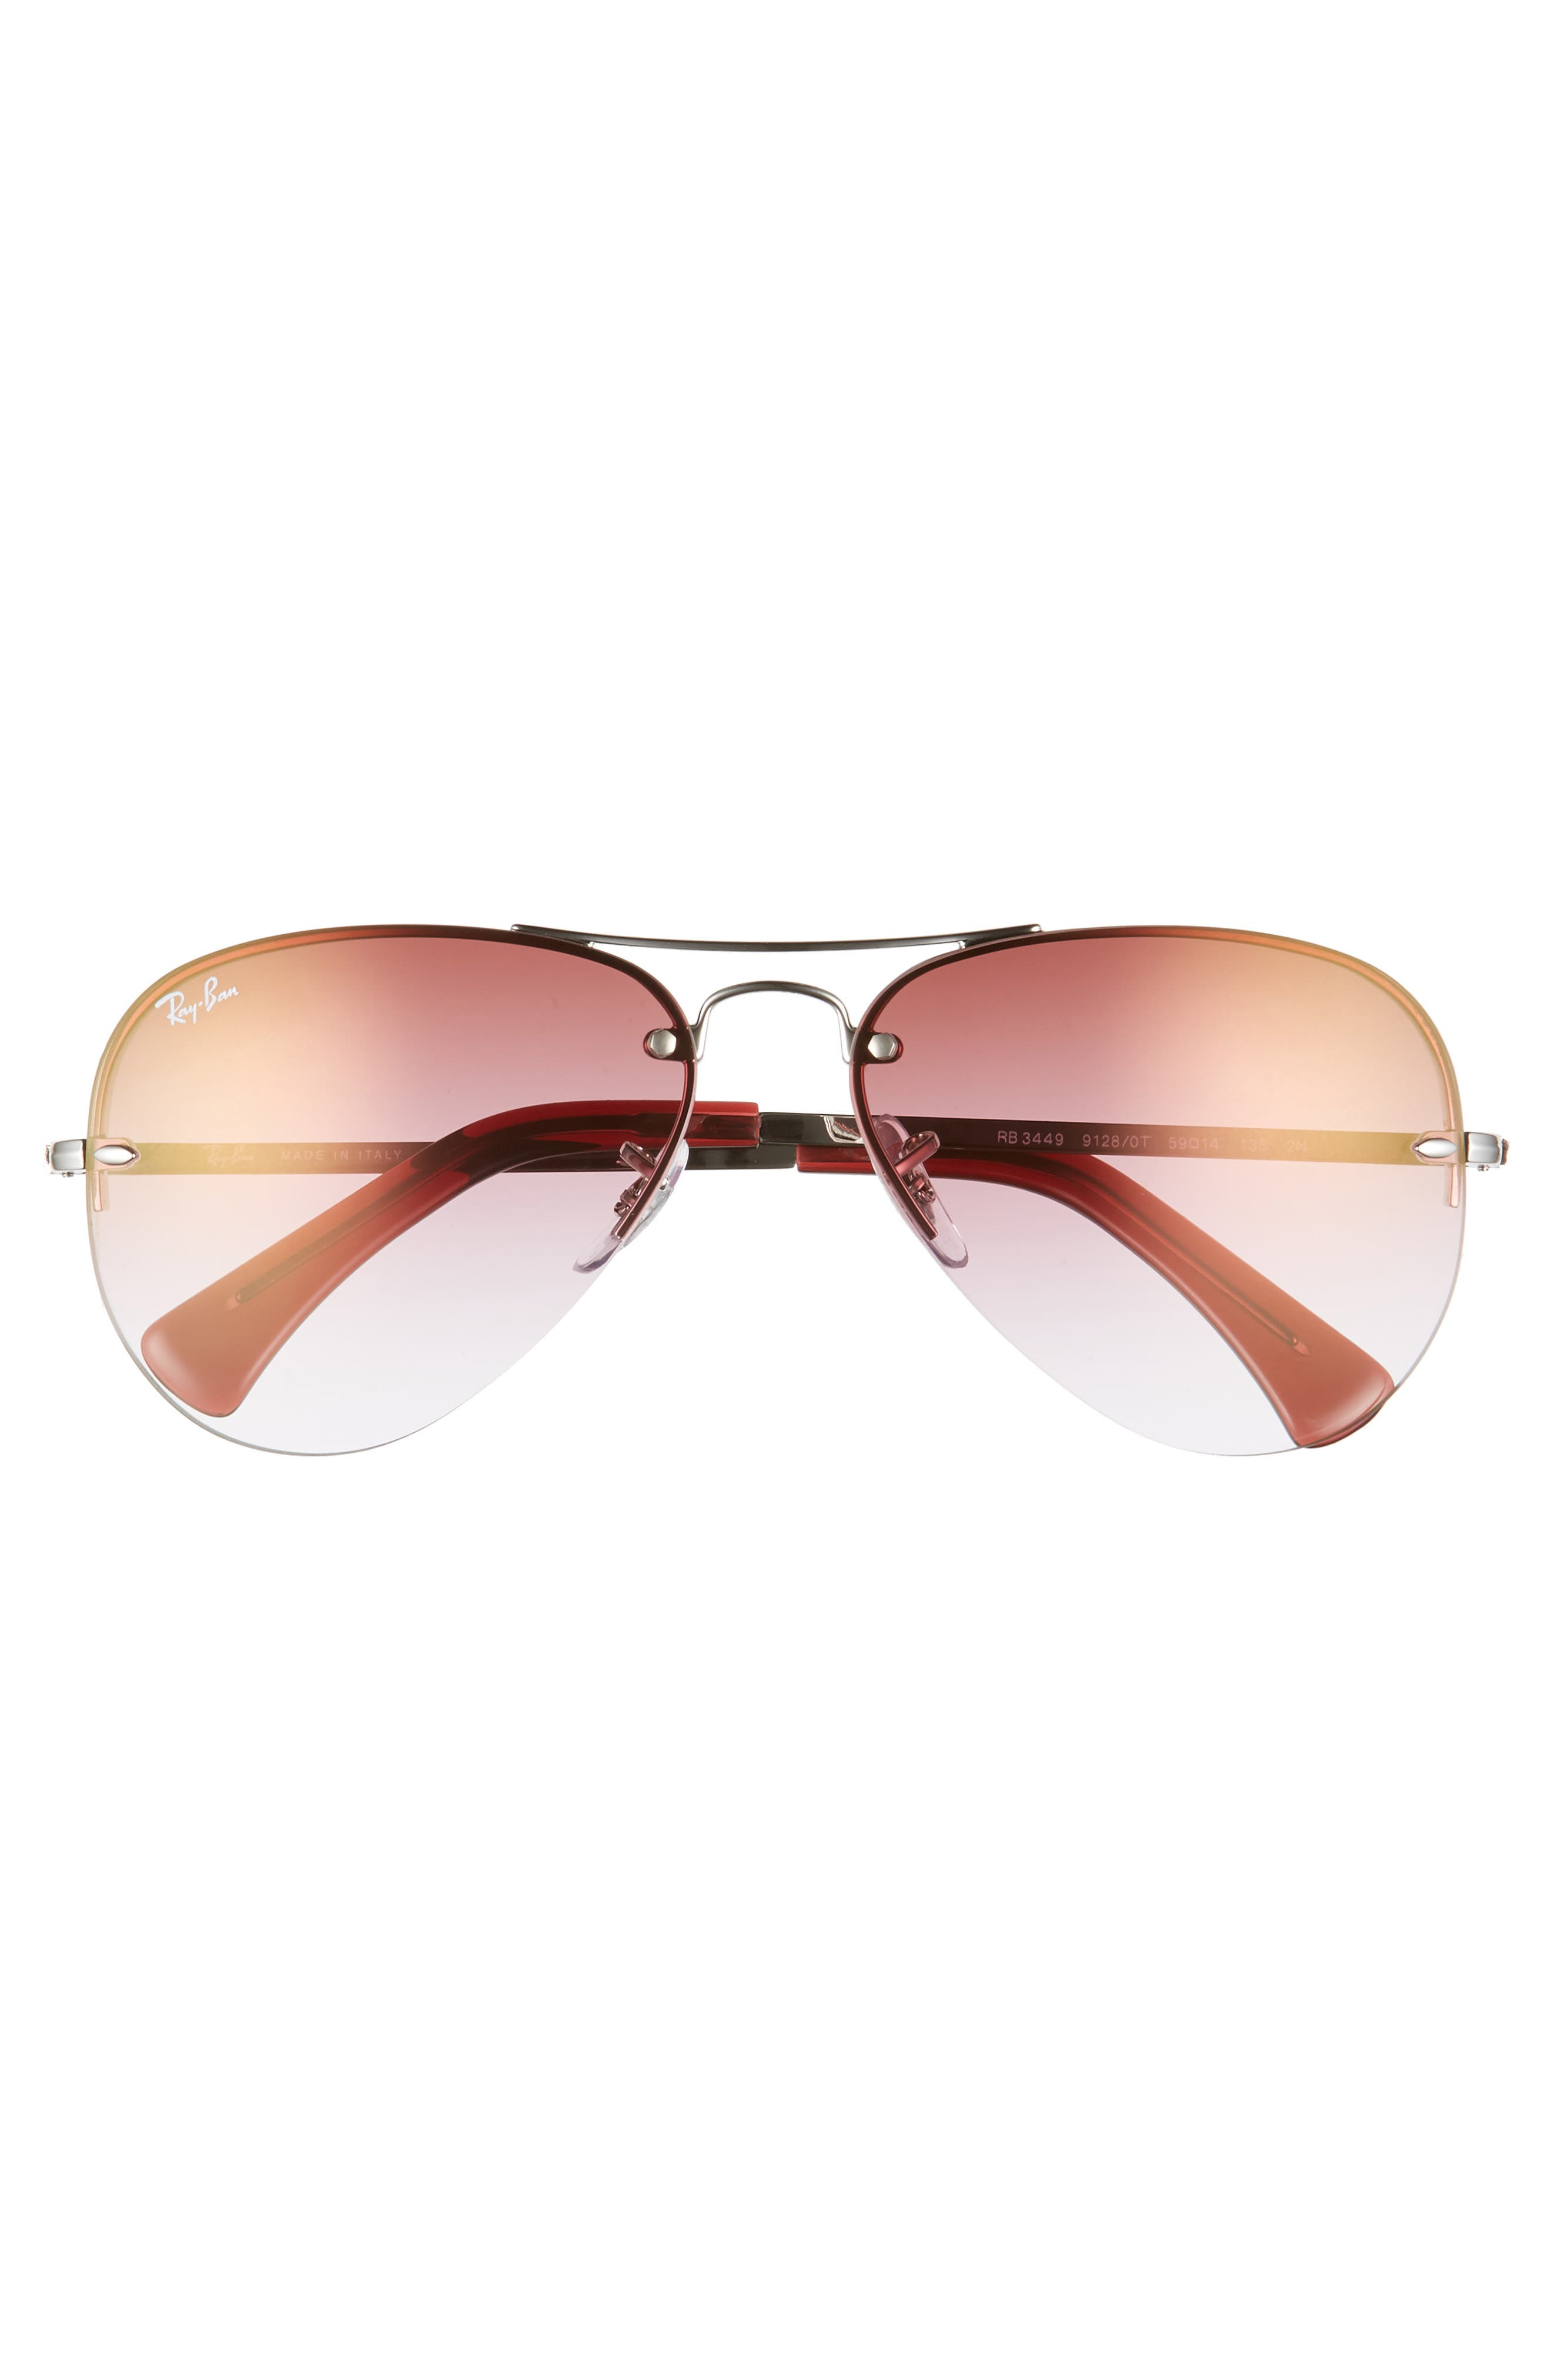 RAY-BAN, Highstreet 59mm Semi Rimless Aviator Sunglasses, Alternate thumbnail 3, color, SILVER/ BORDEAUX GRADIENT